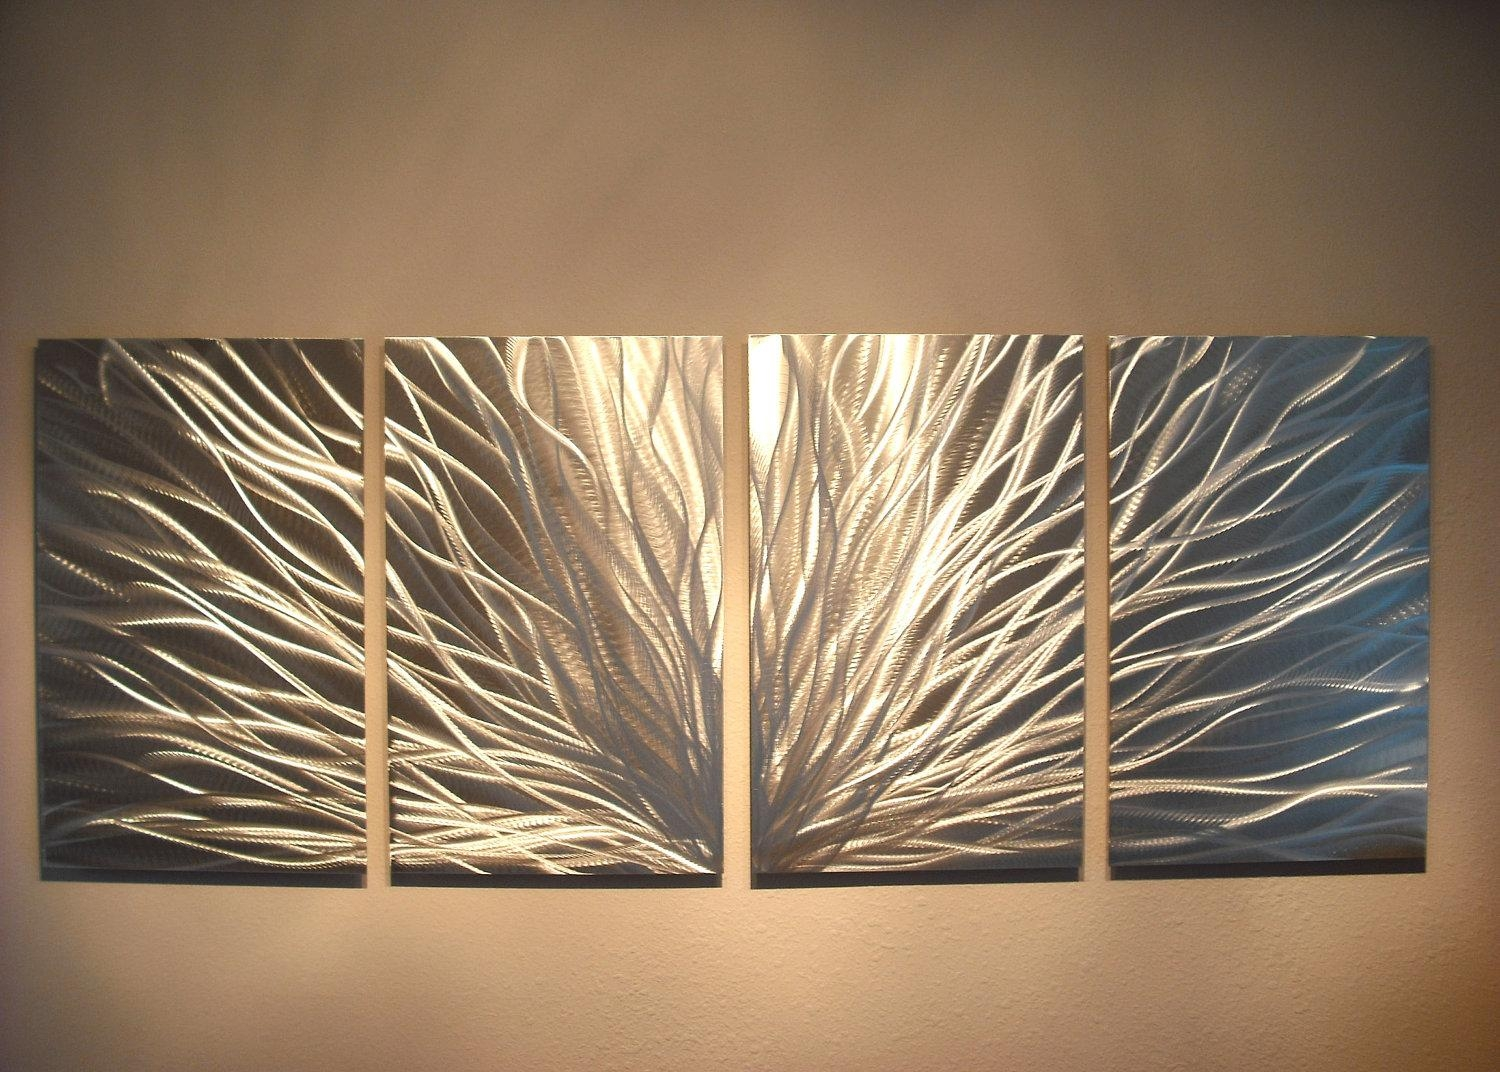 Metal Wall Art Decor Abstract Aluminum Contemporary Modern Throughout Metallic Wall Art (Image 12 of 20)